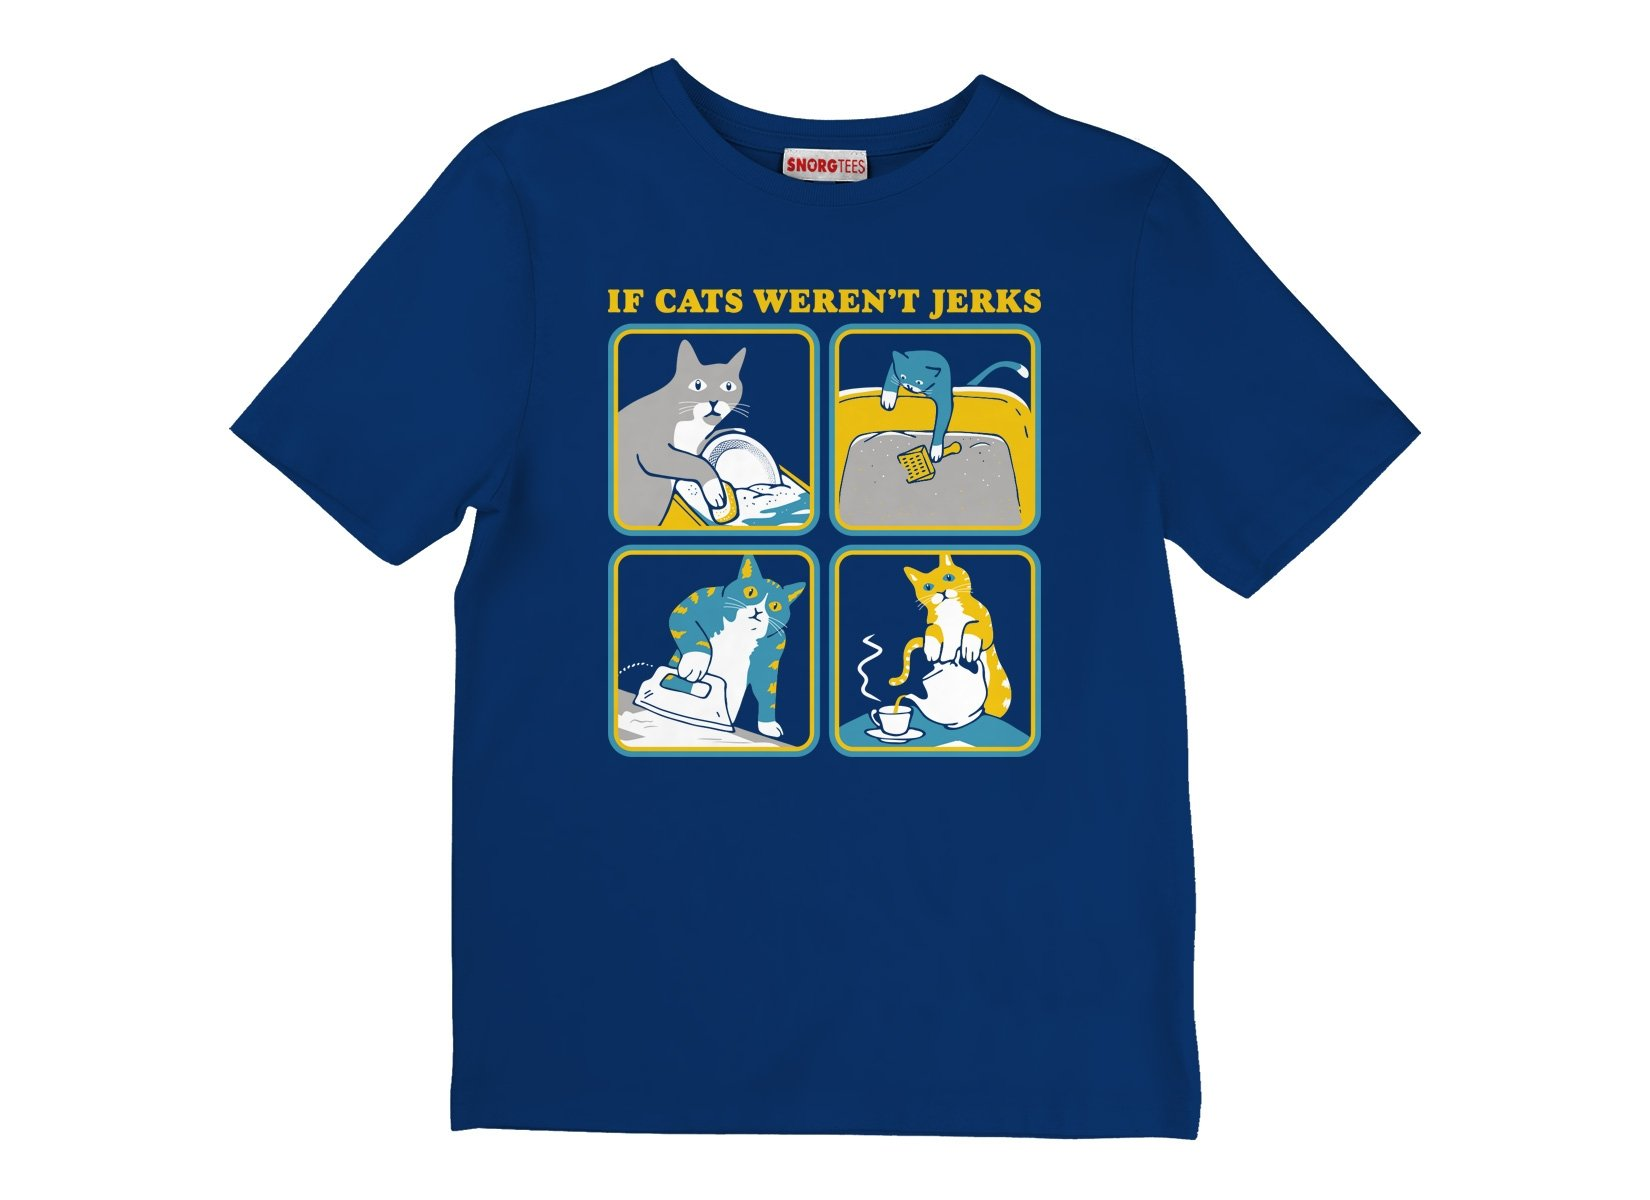 If Cats Weren't Jerks on Kids T-Shirt